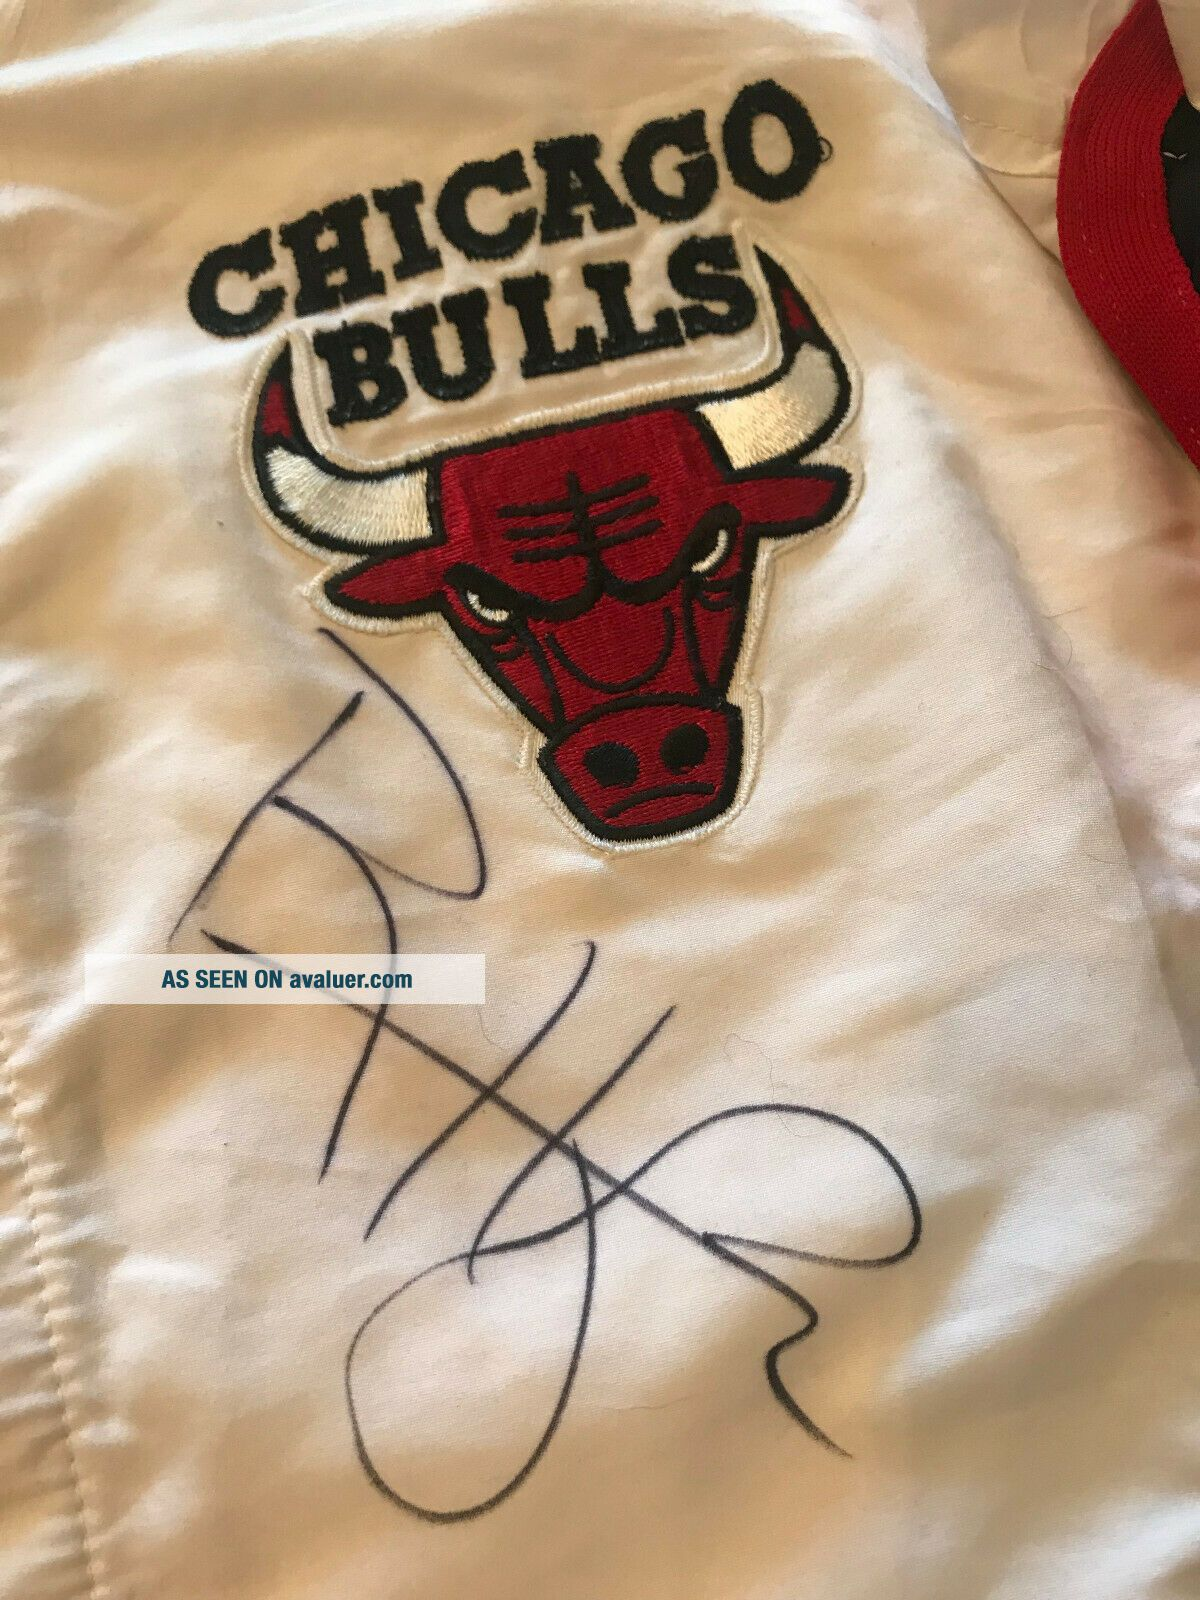 96 - 97 Ron Harper CHICAGO BULLS Game Worn Autograph Signed Warmup NBA Jacket